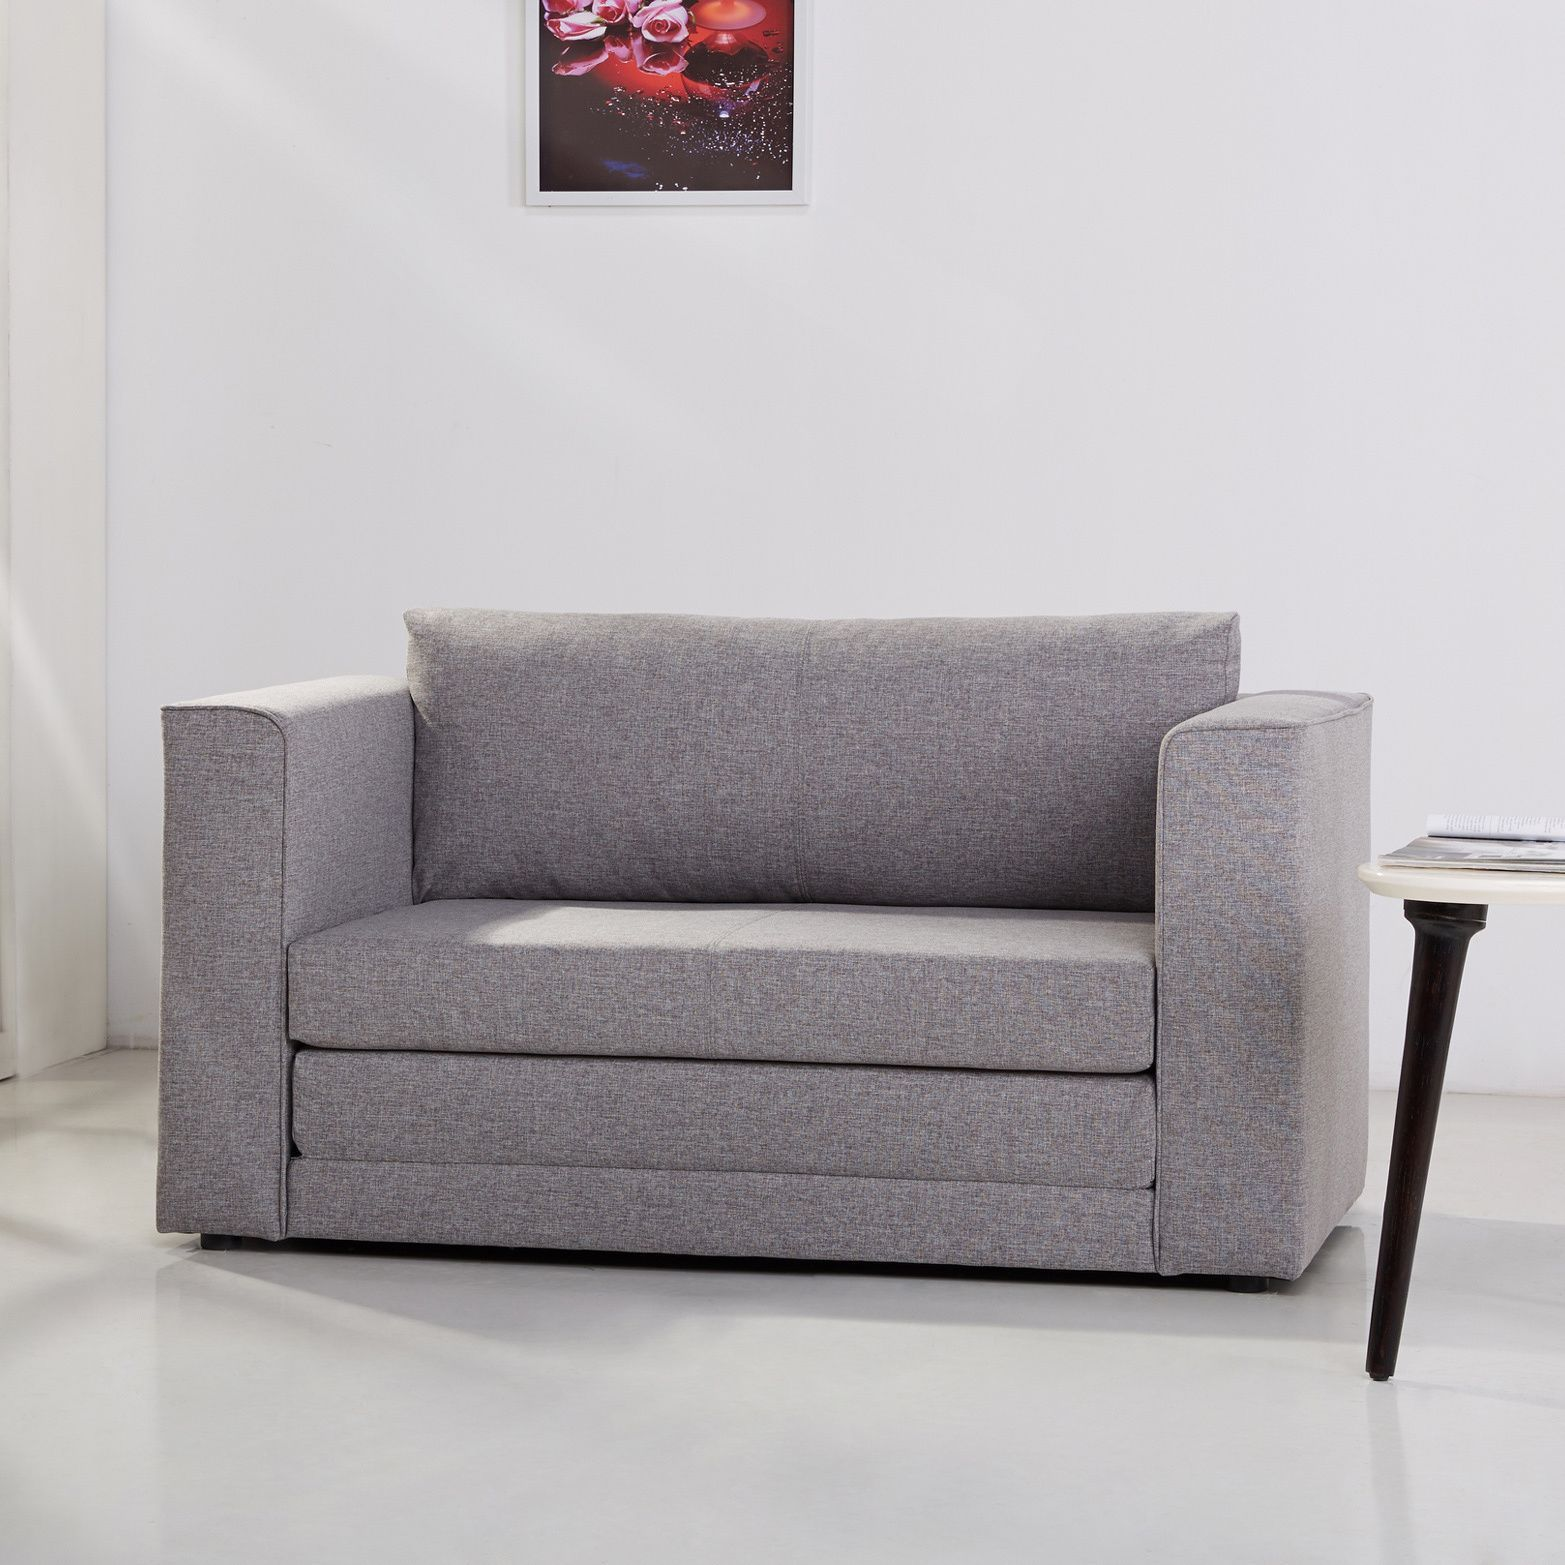 This multi functional contemporary loveseat sleeper adds fort and